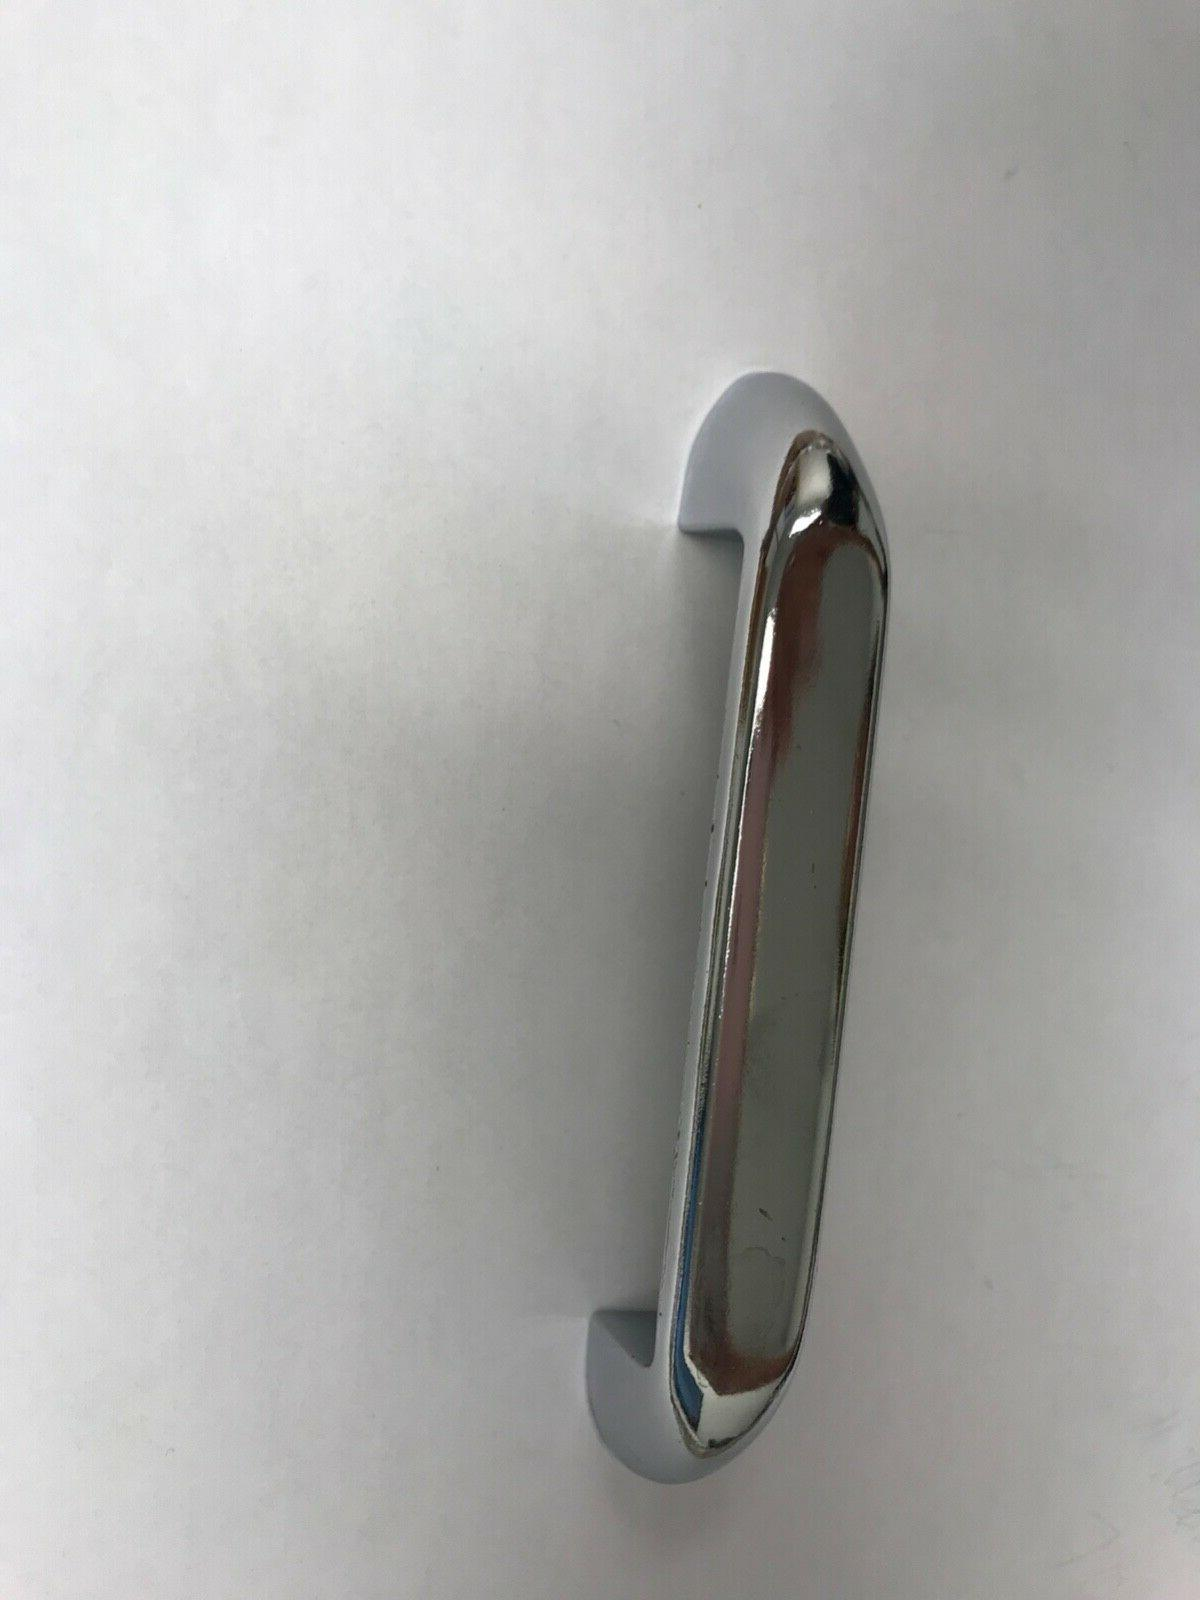 Chrome with Hole size screws